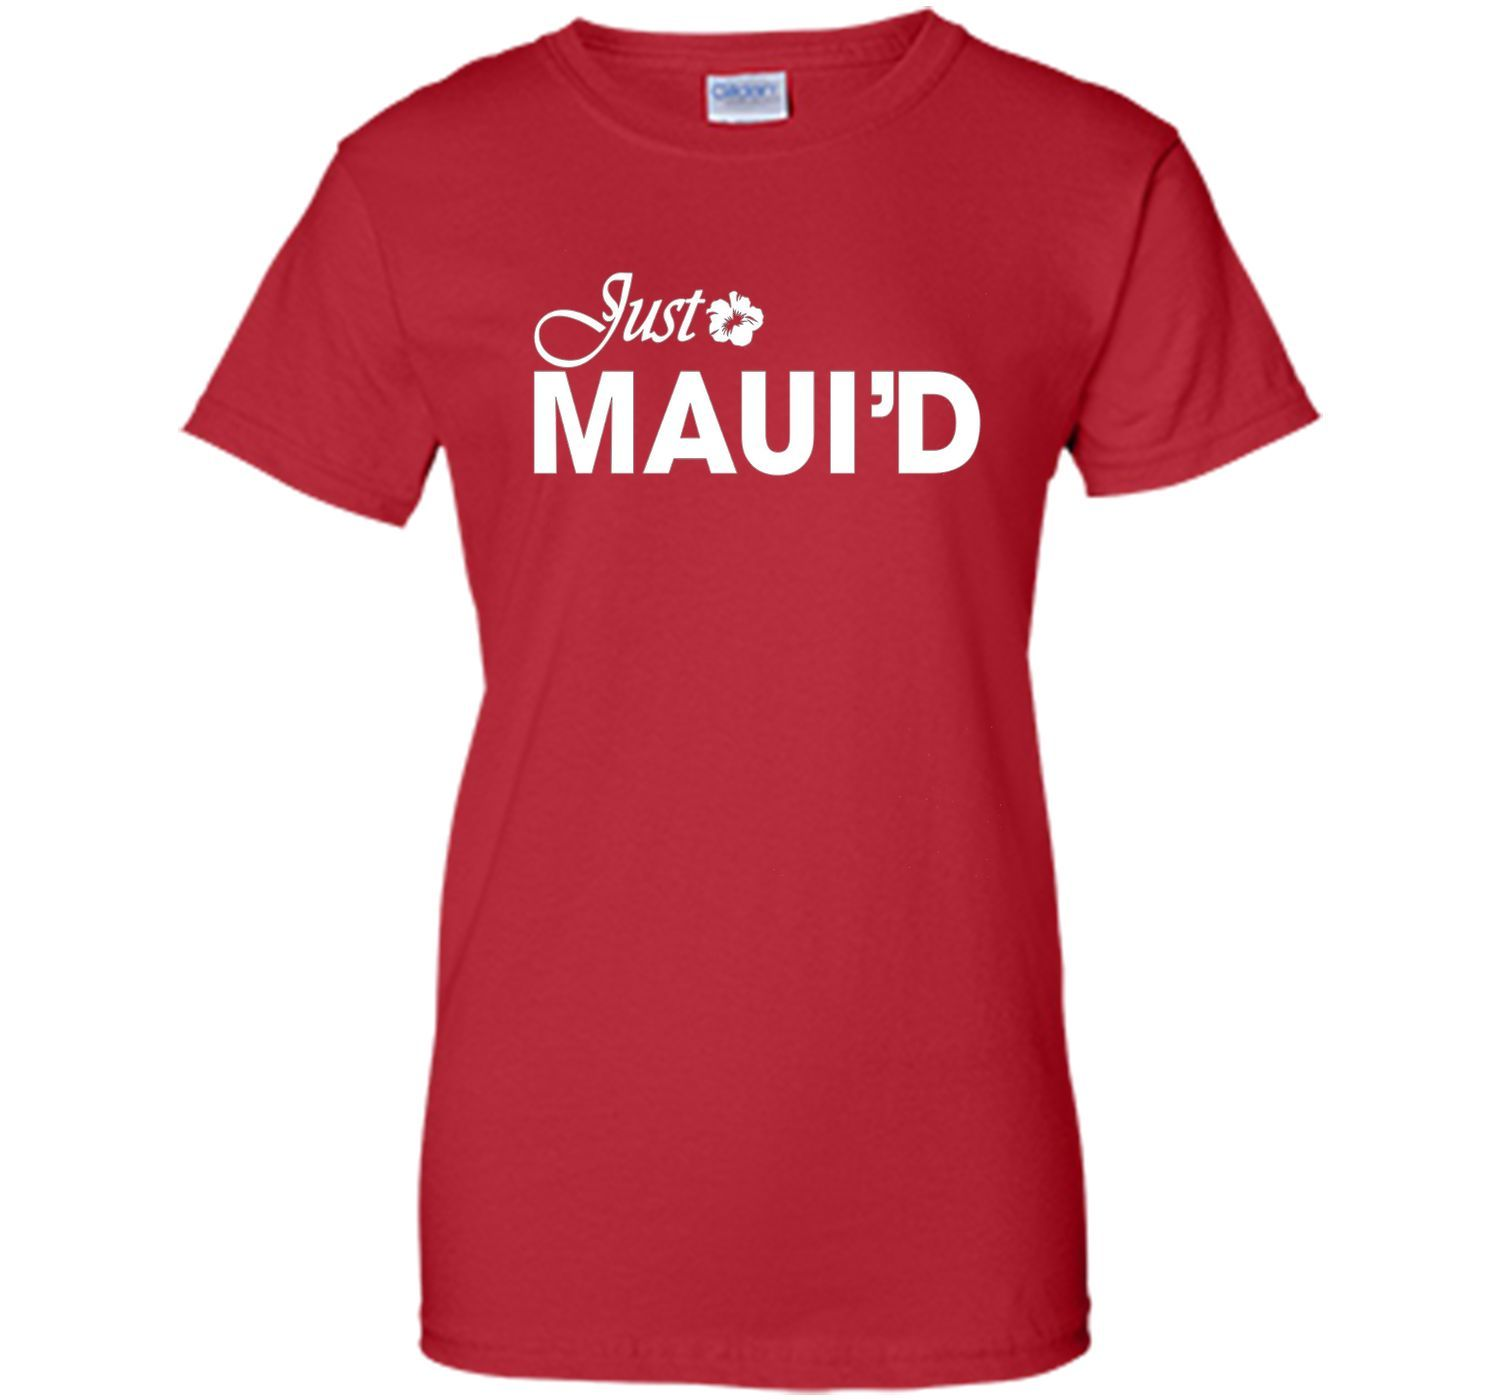 Just Maui'd T Shirt Wedding T Shirt